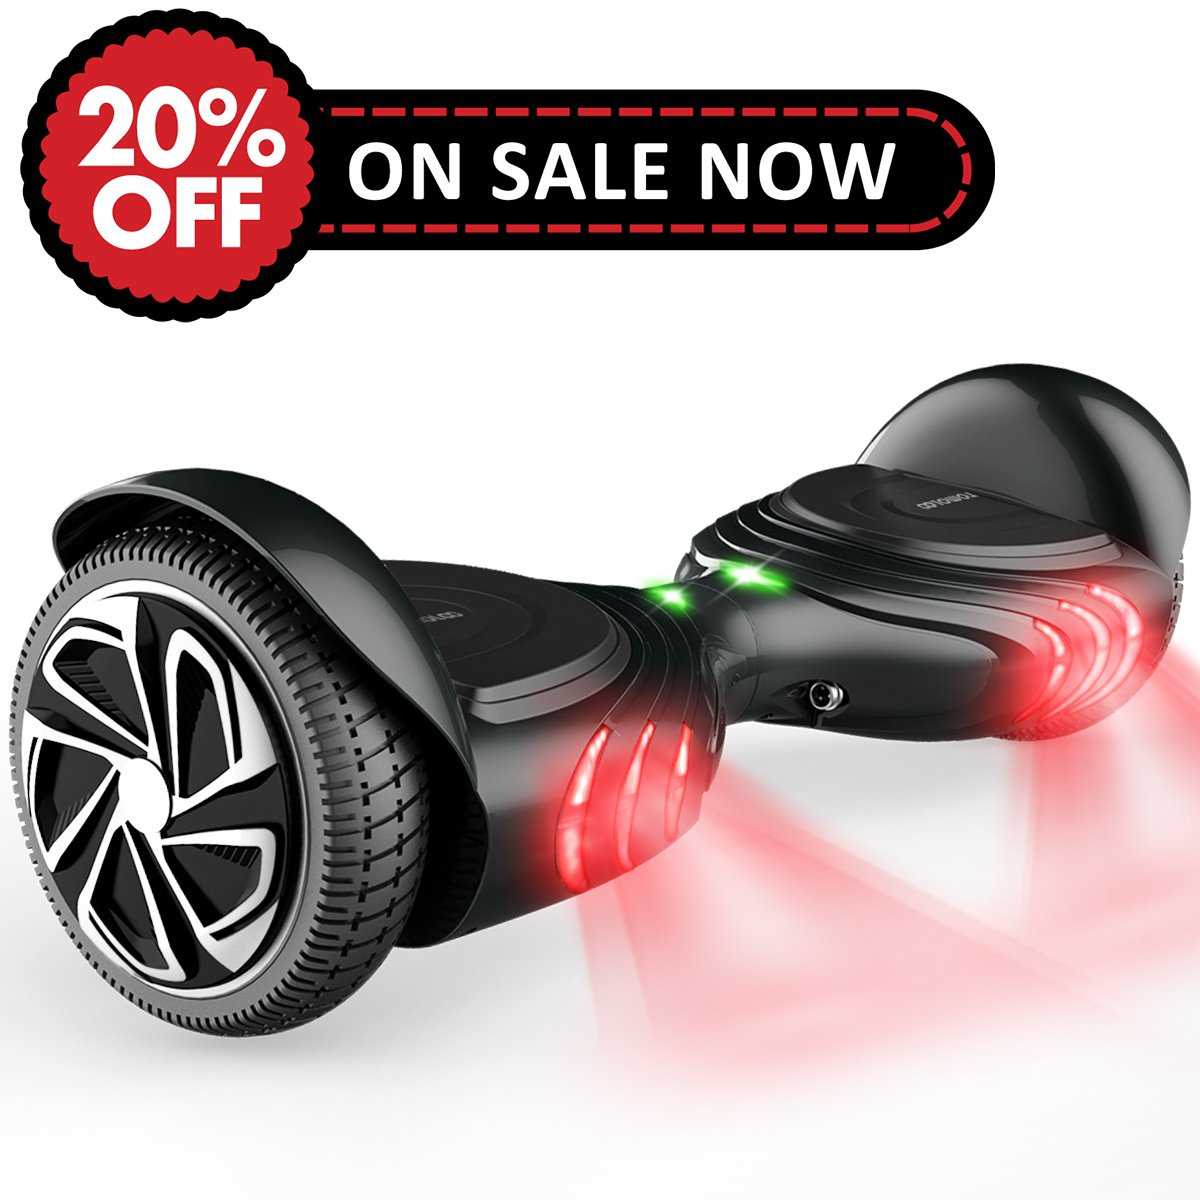 TOMOLOO Hoverboard with Smart Scooter Two-Wheel Self Balancing Electric Scooter and No Bluetooth No App with UL2272 Certified for Adults and Children. (Q2-BLACK) by TOMOLOO